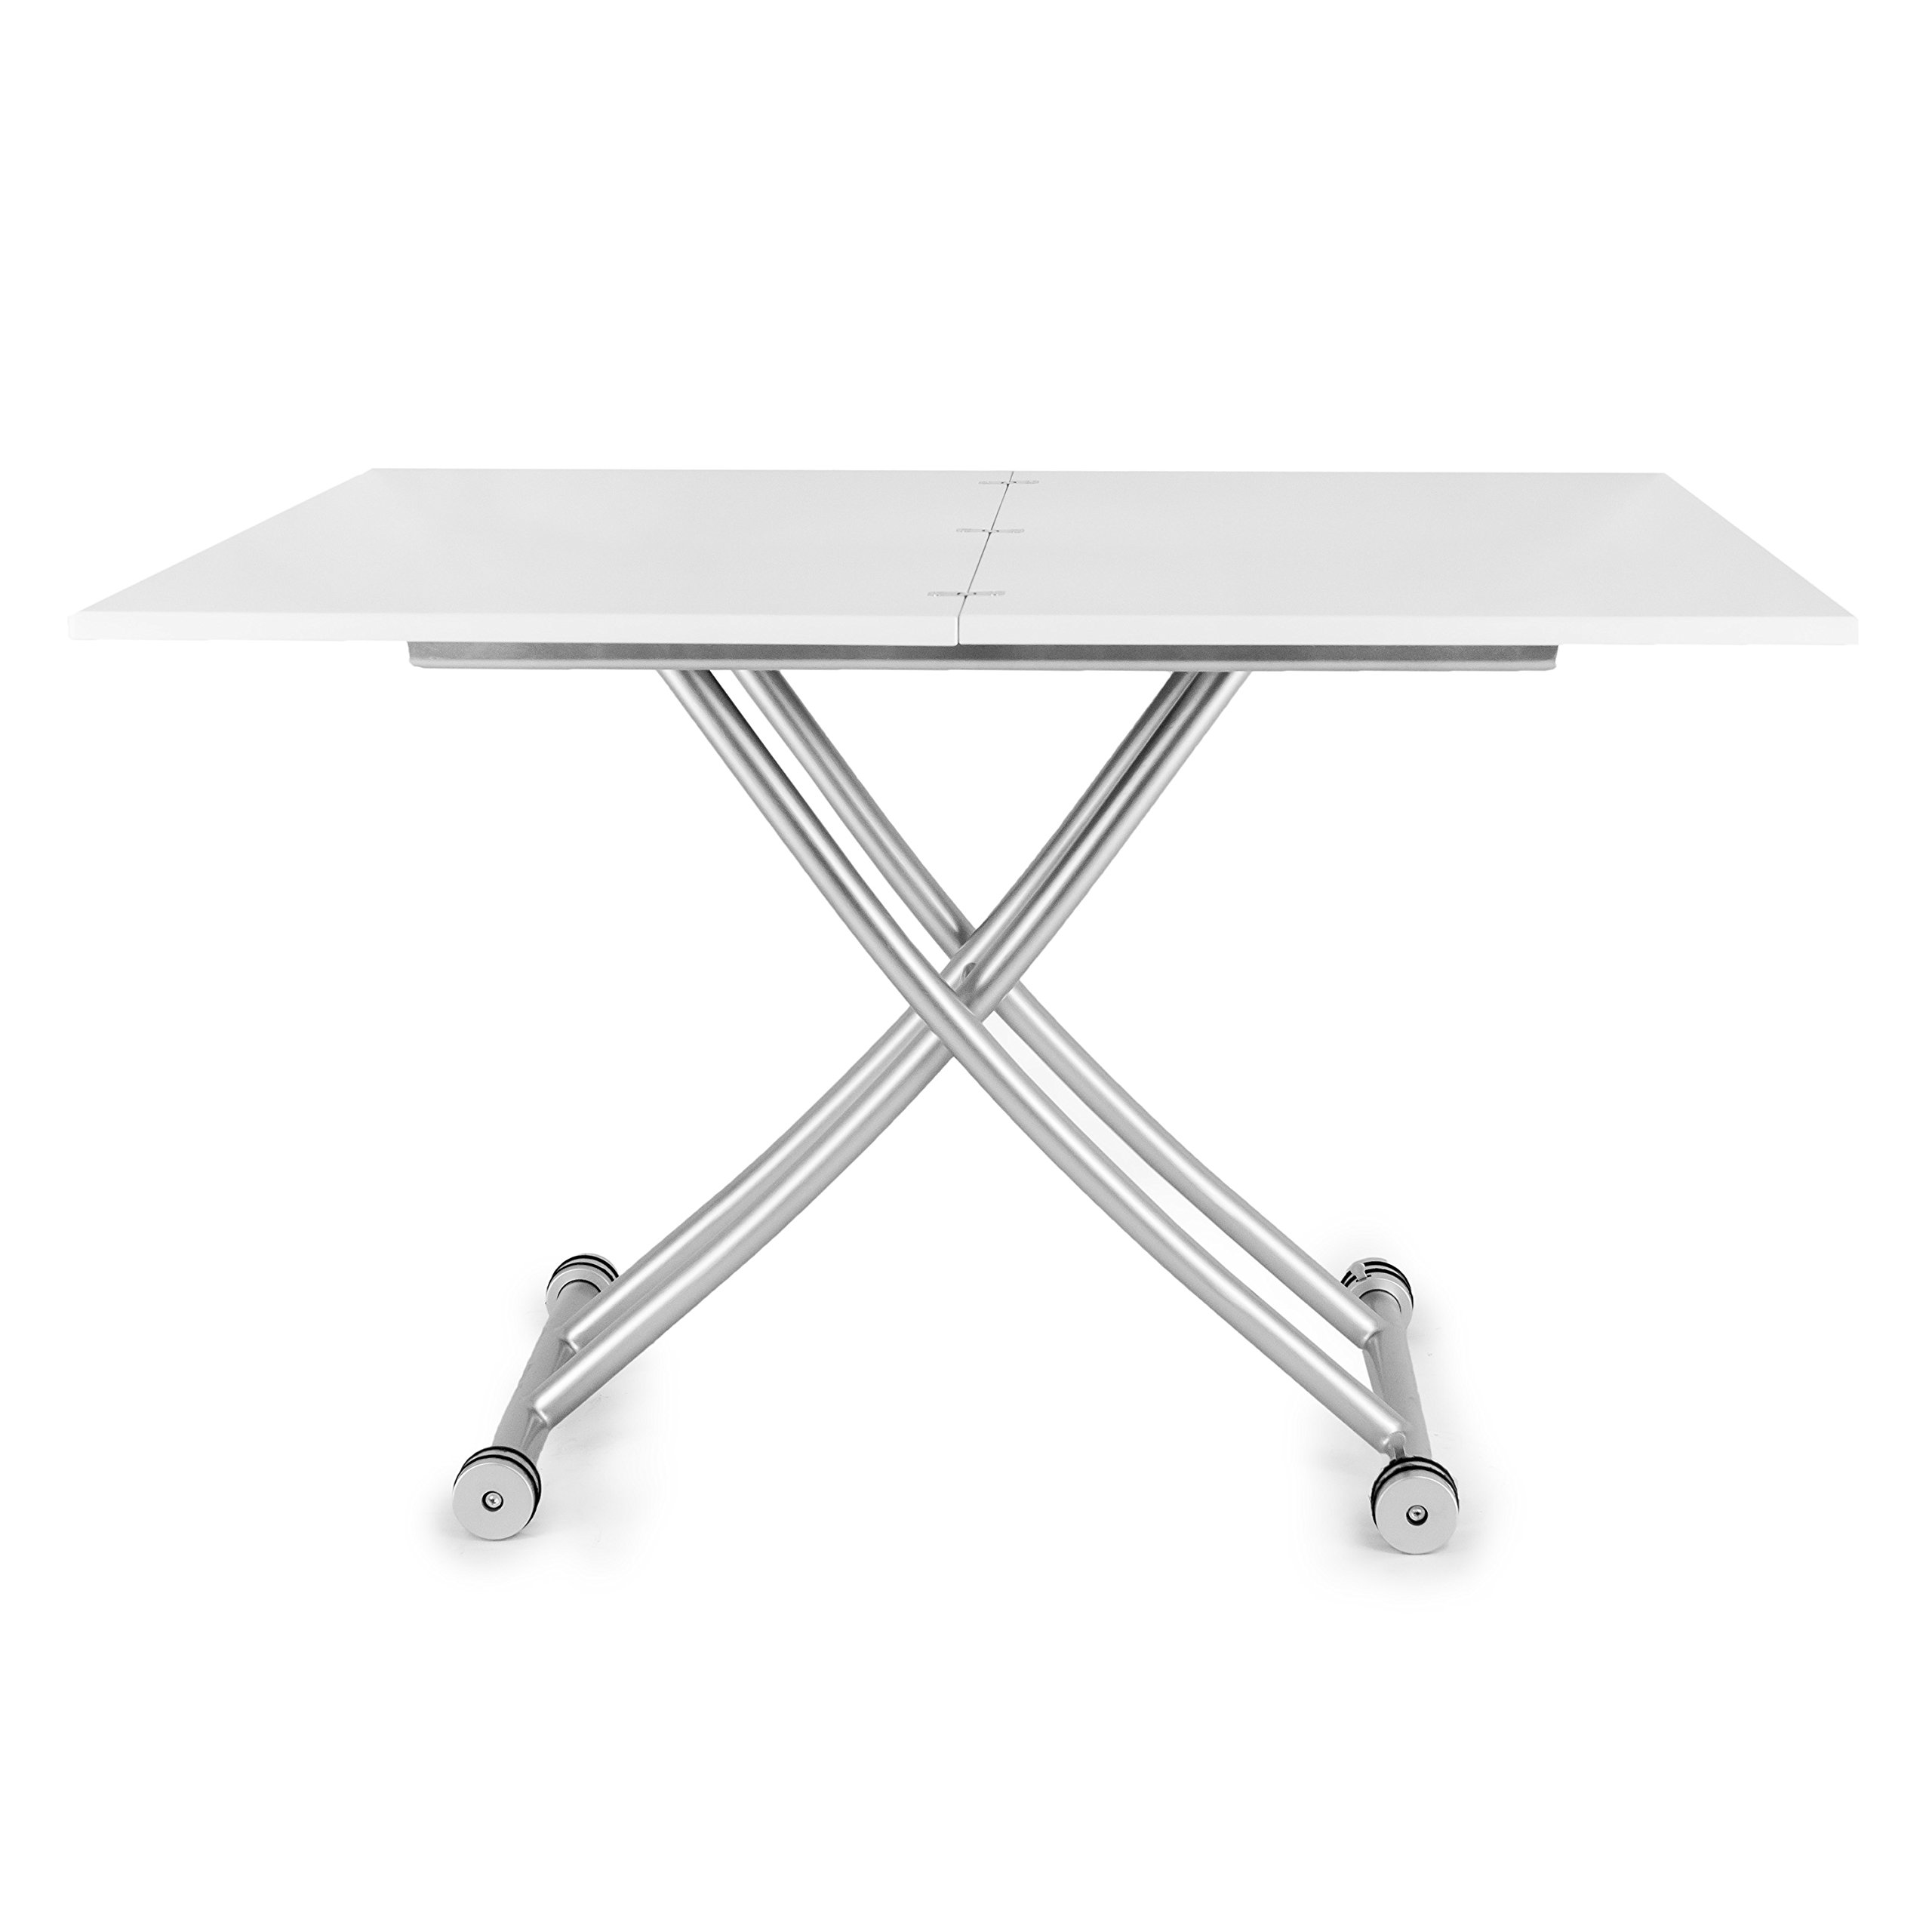 Corner Housewares CO-2219-GLSWHT Transforming X Coffee and Dining Table, White